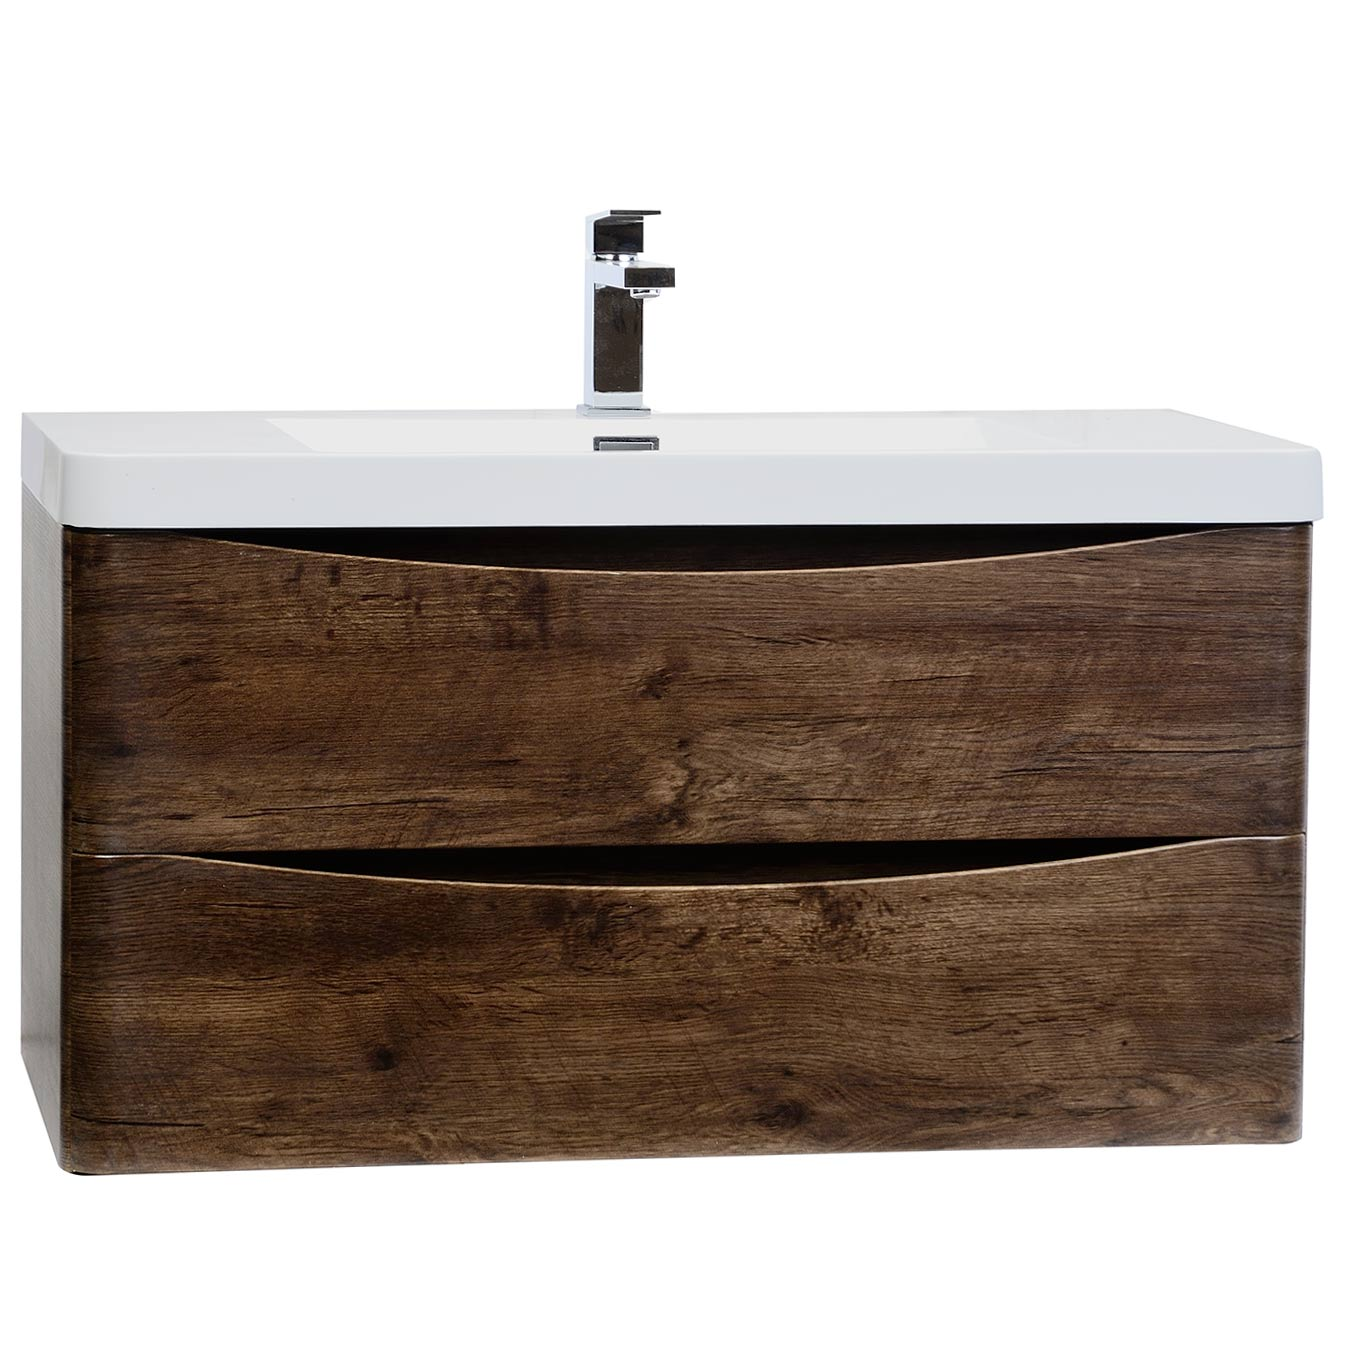 buy merida 35 5 wall mount bathroom vanity in rosewood tn sm900 rw